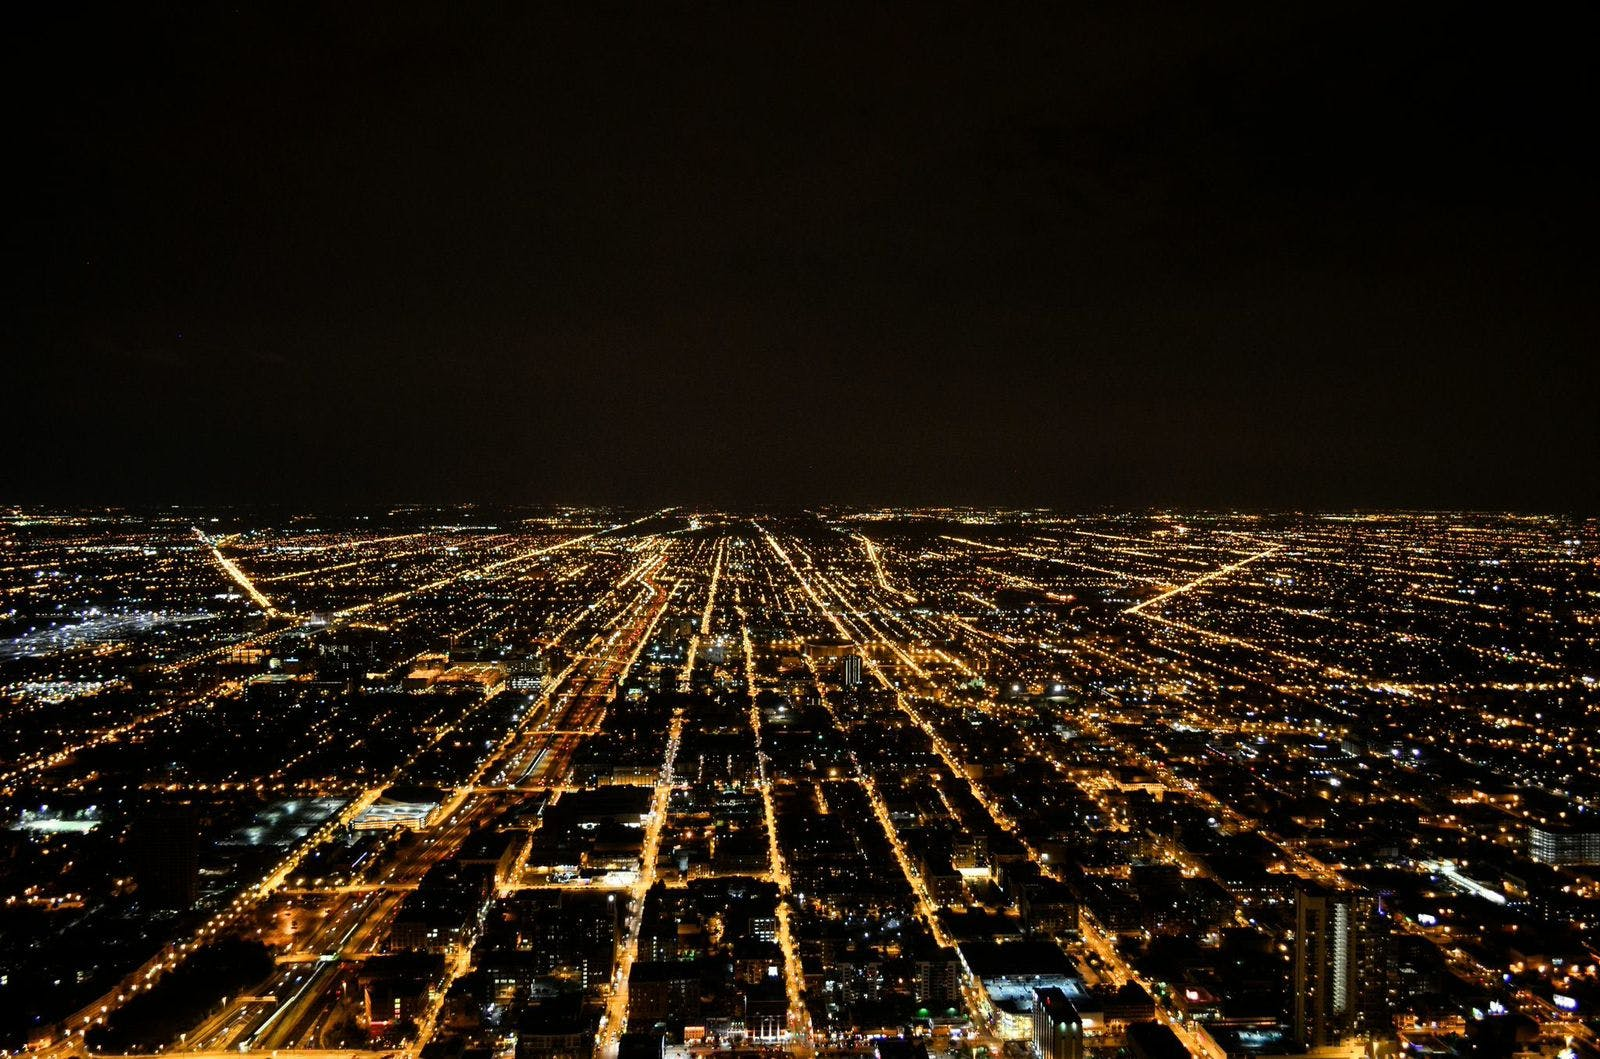 Lighted Cityscapes at Night Time